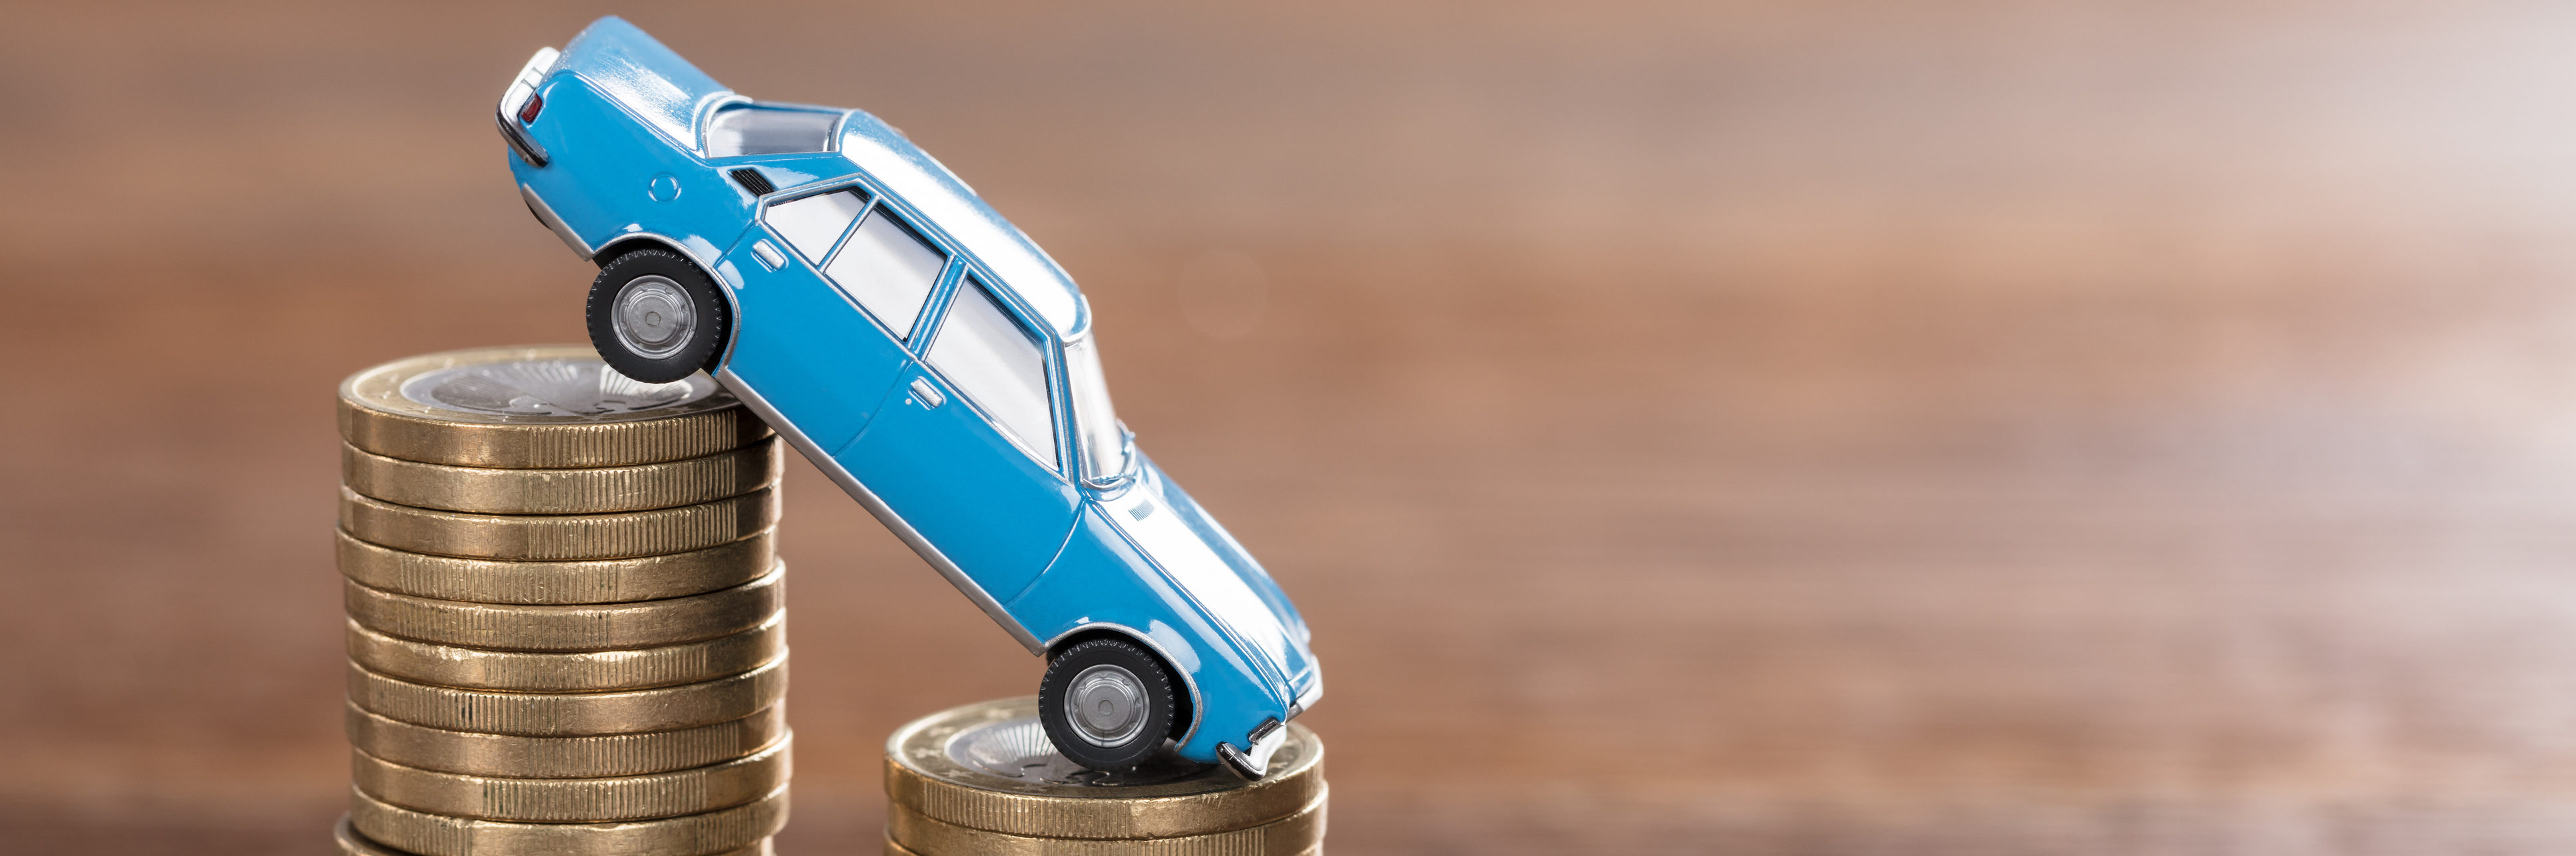 Close-up Of A Car Model Over A Stacked Coin At Wooden Desk